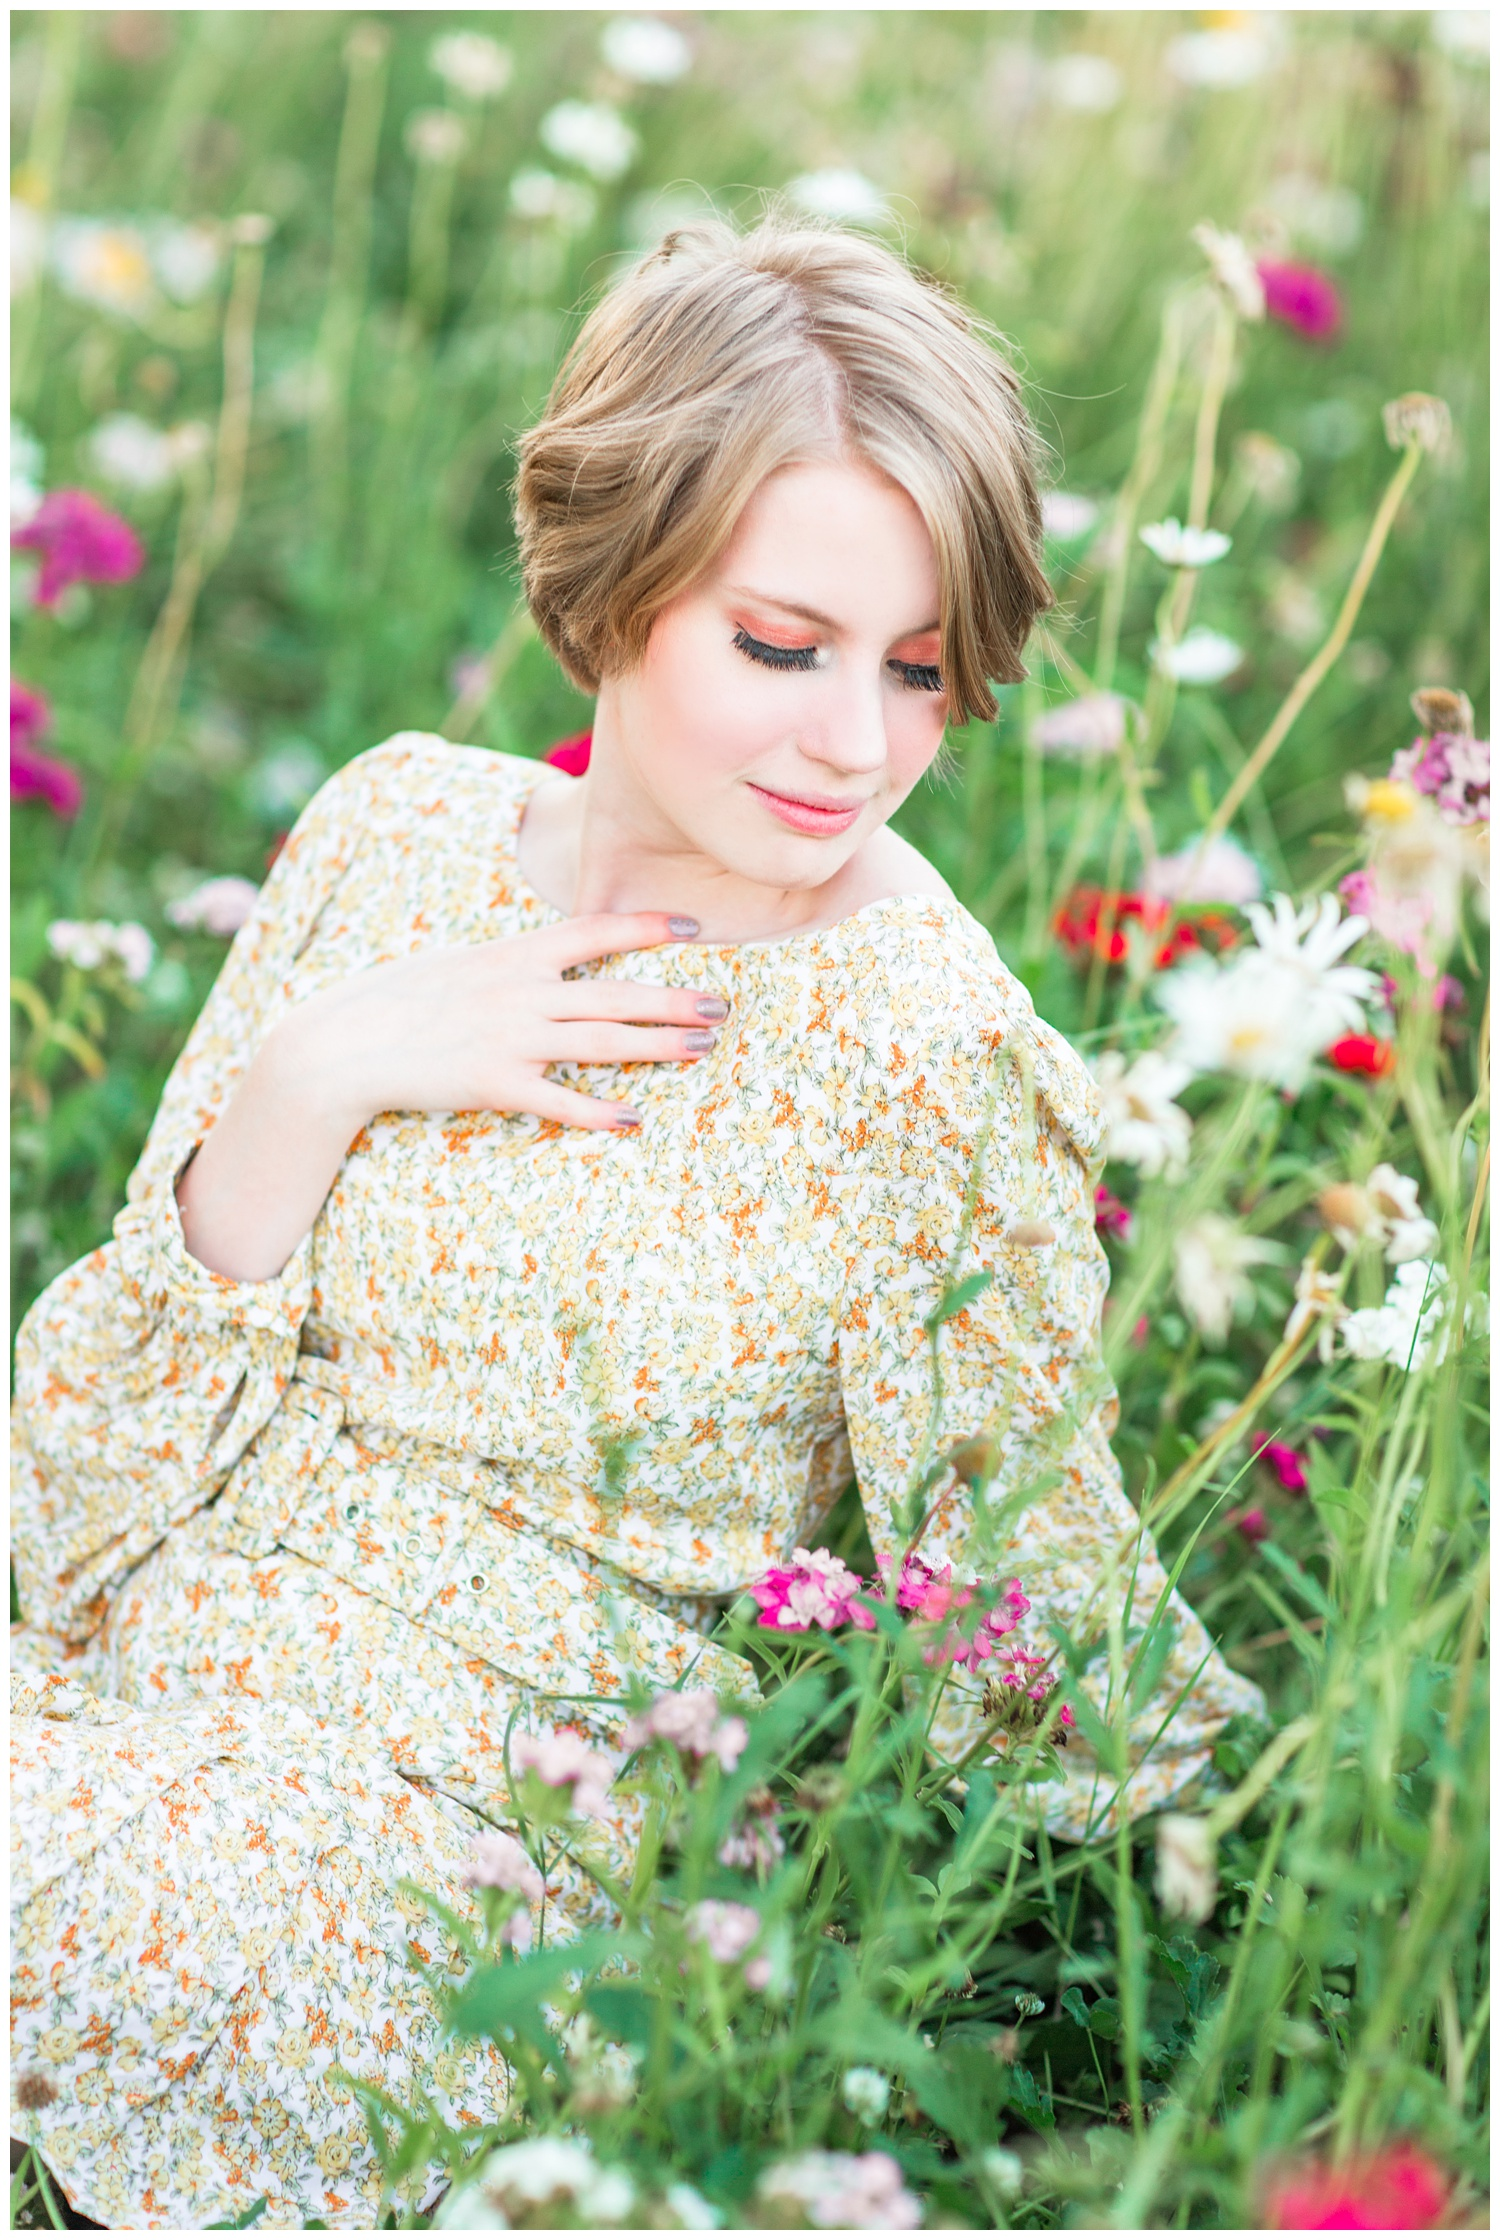 Vintage, film inspired, 70s retro styled senior photoshoot at golden hour in a flower field. | CB Studio